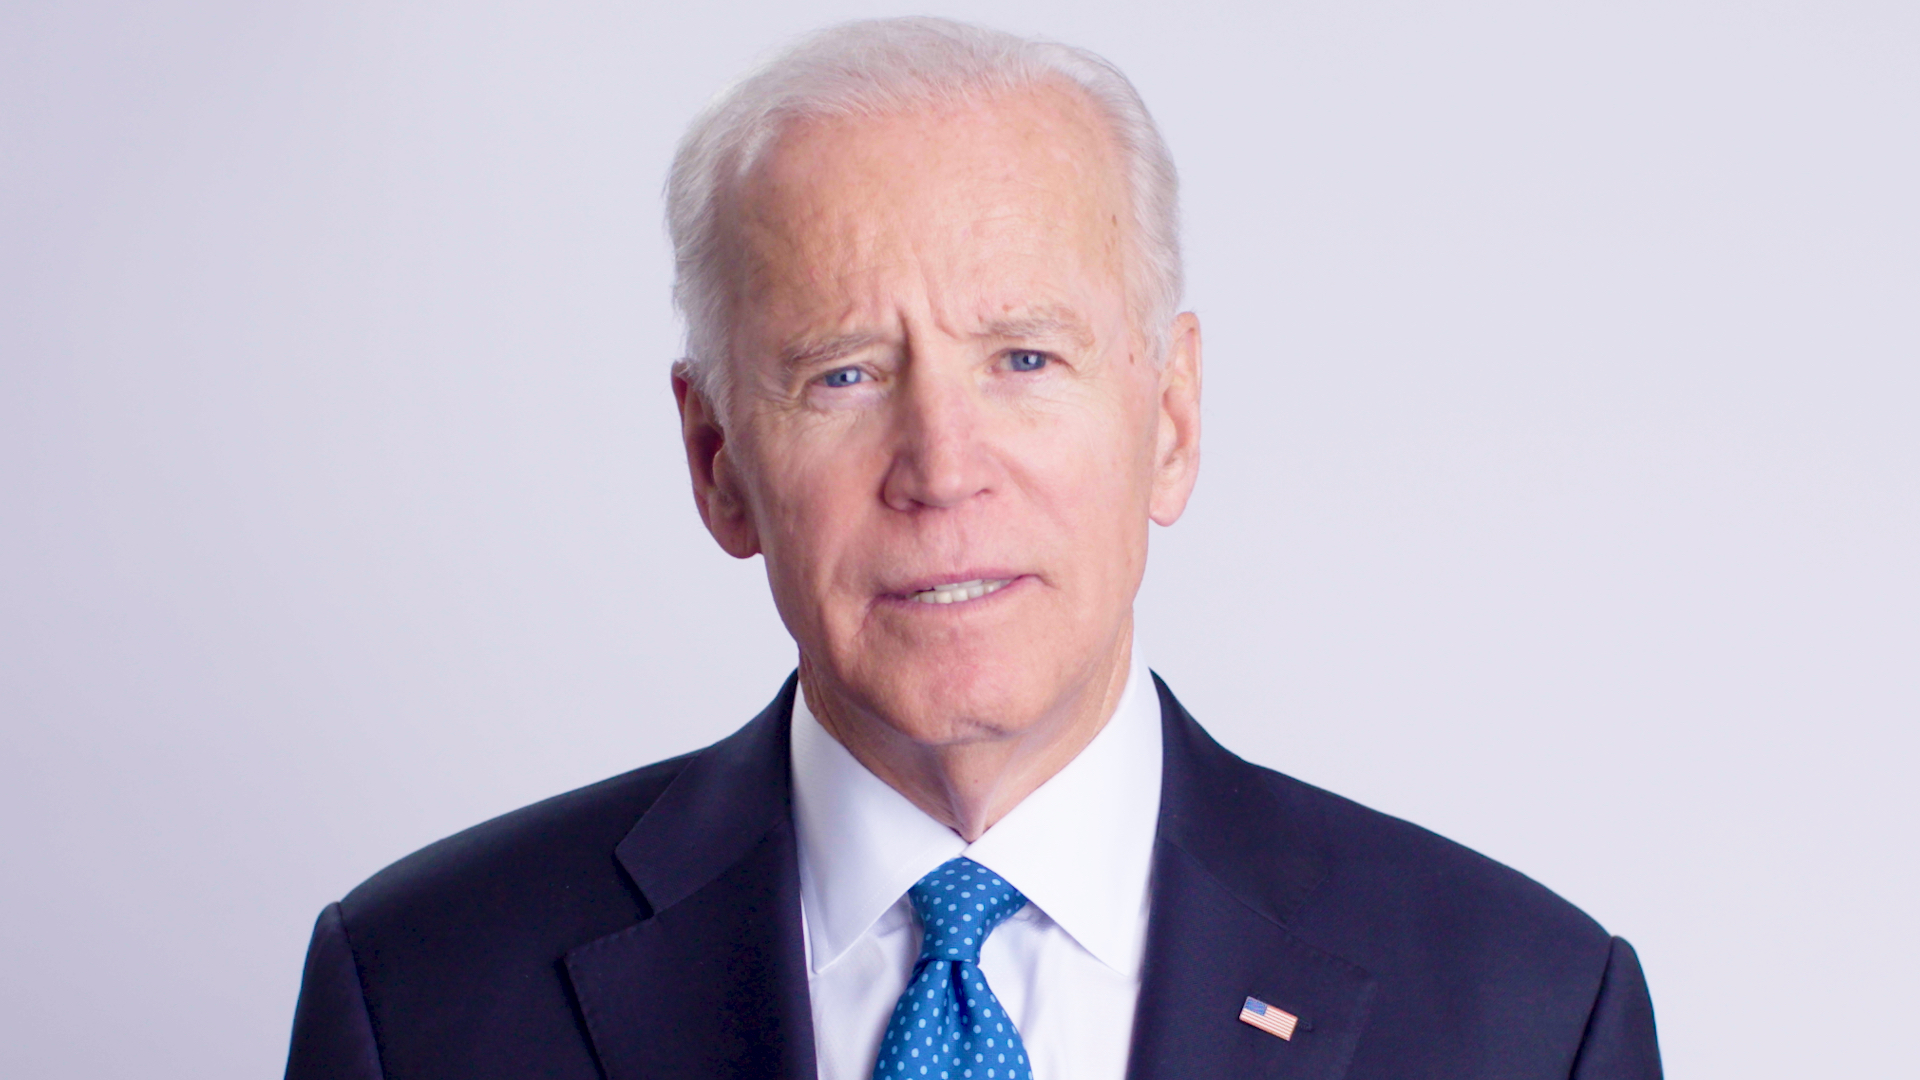 The Biden Foundation